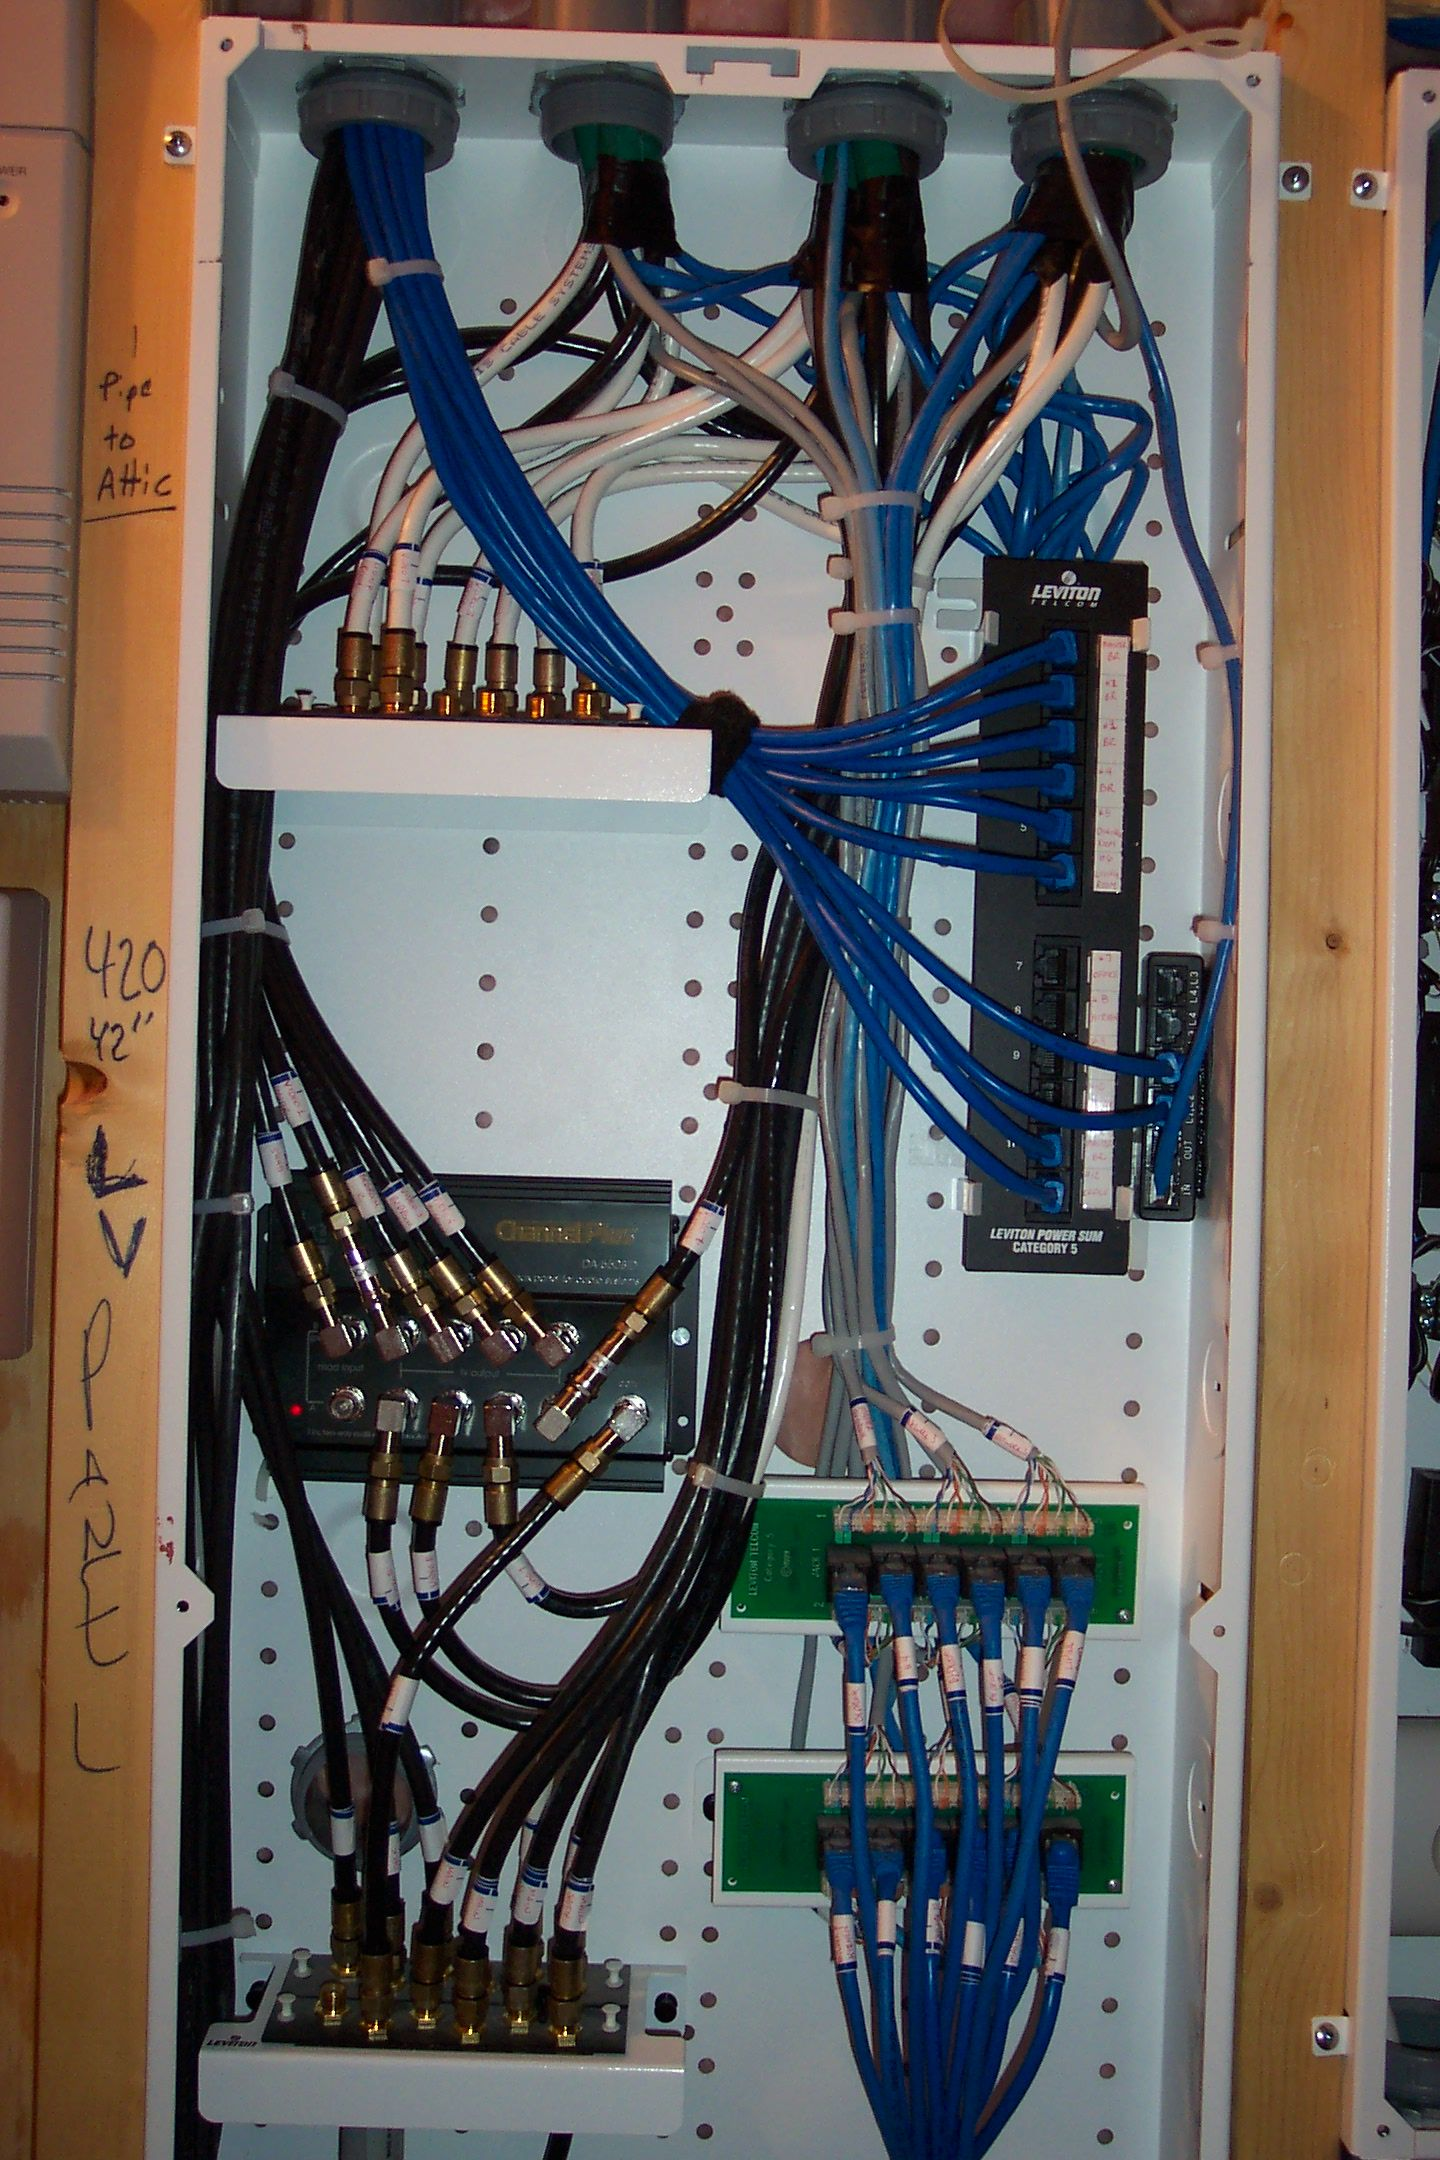 home ethernet wiring panel [ 1440 x 2160 Pixel ]